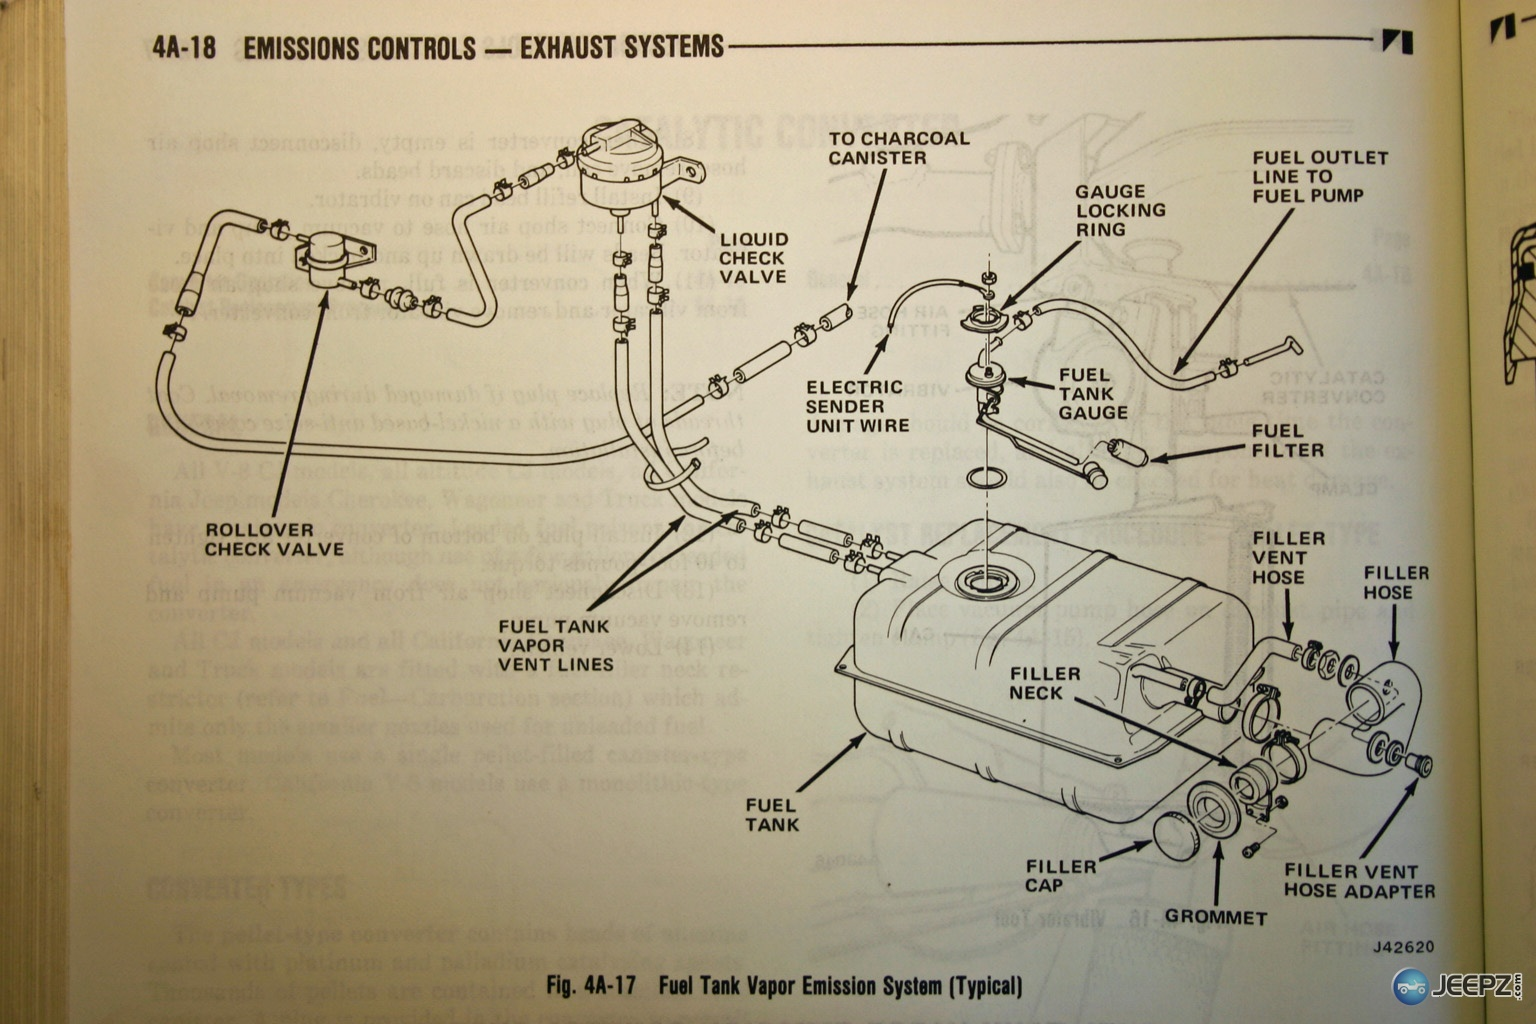 hight resolution of jeep wrangler fuel system diagram wiring diagram expert 79 jeep cherokee fuel system diagram